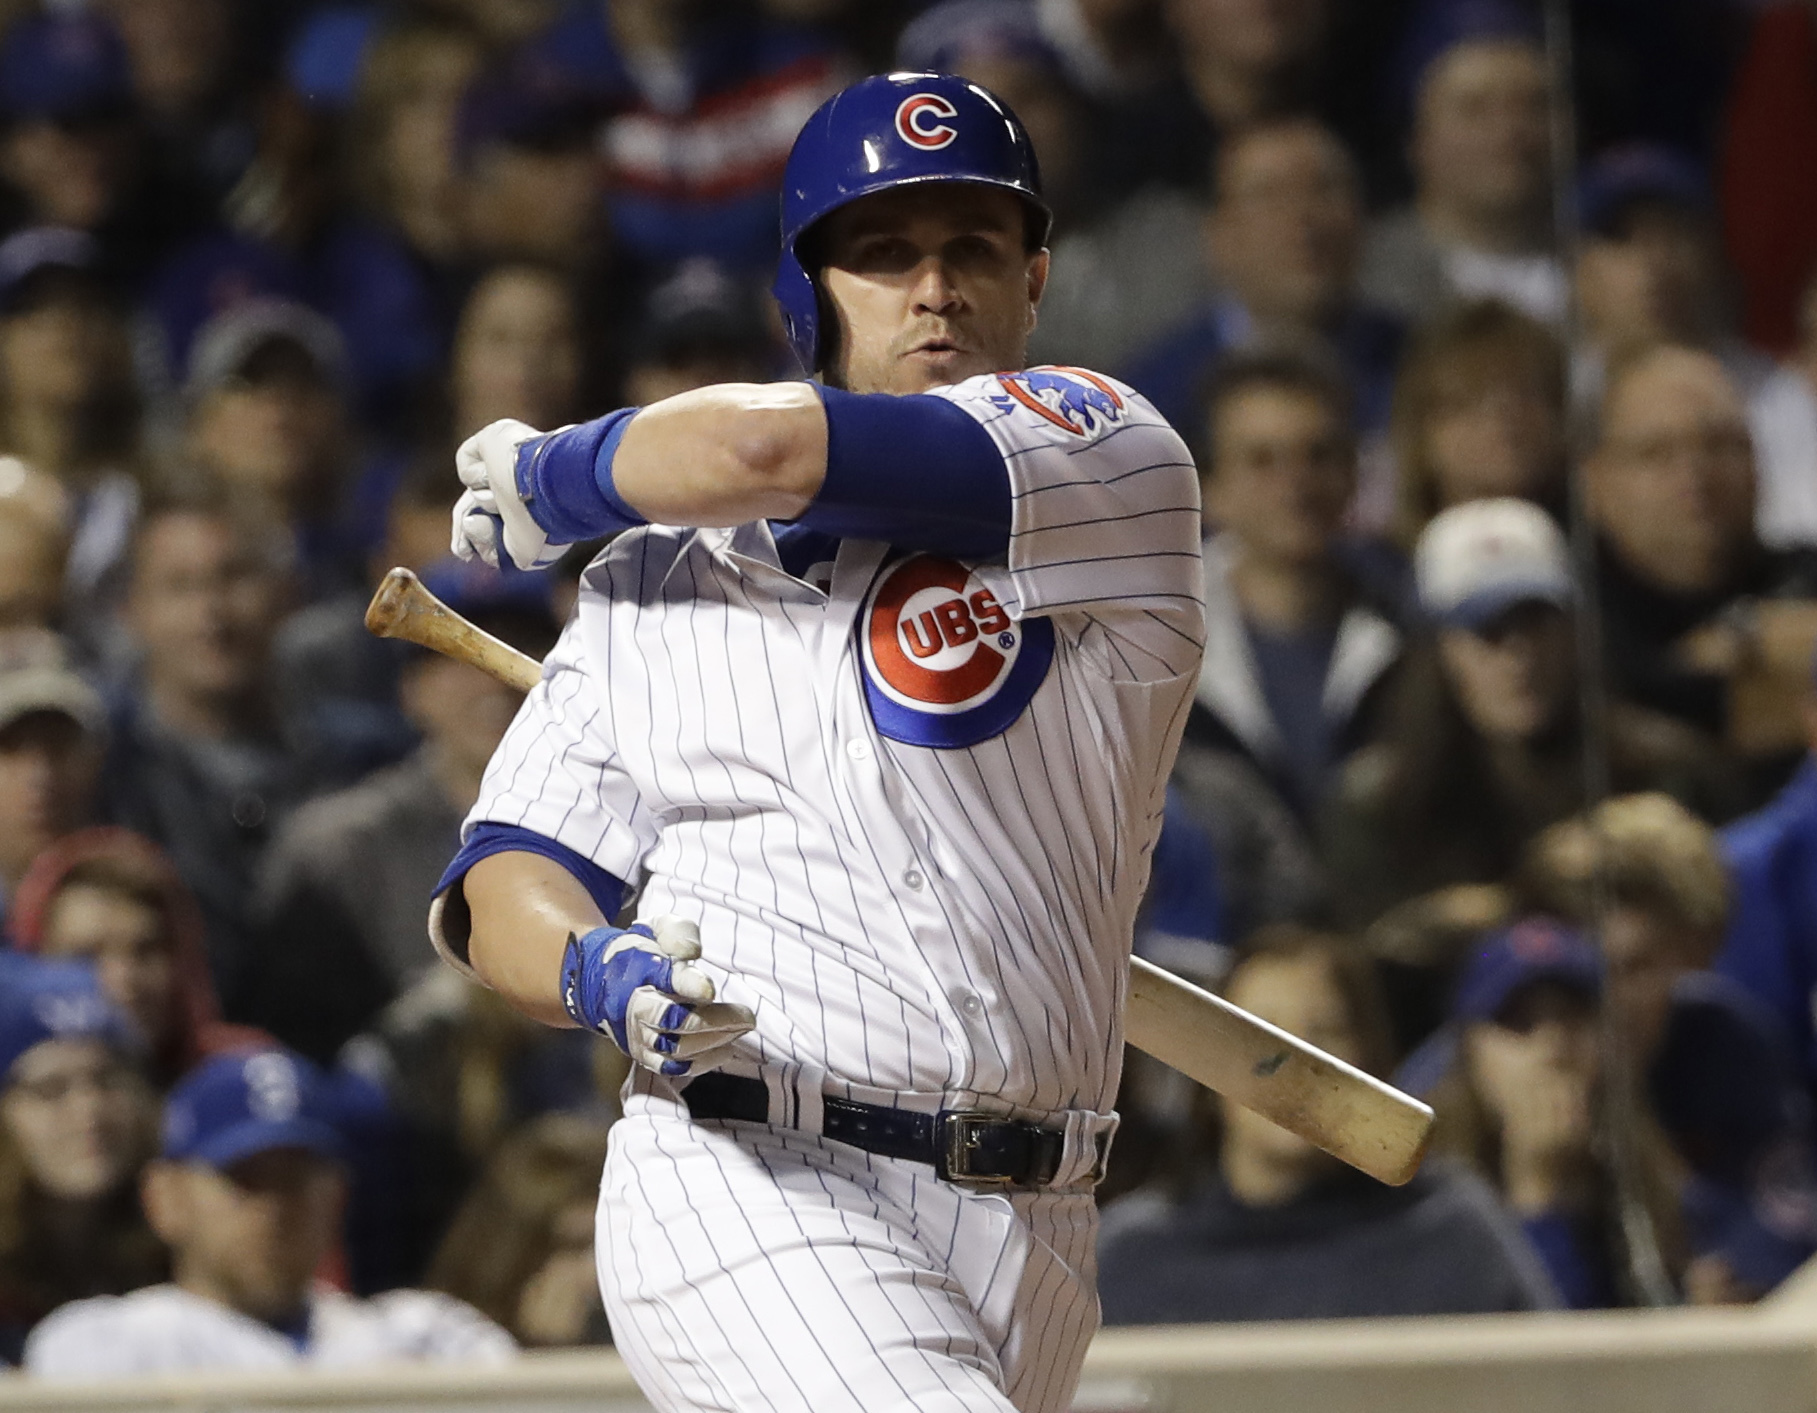 Chicago Cubs' Miguel Montero loses his bat swinging during the fifth inning of Game 3 of the Major League Baseball World Series against the Cleveland Indians Friday, Oct. 28, 2016, in Chicago. (AP Photo/David J. Phillip)